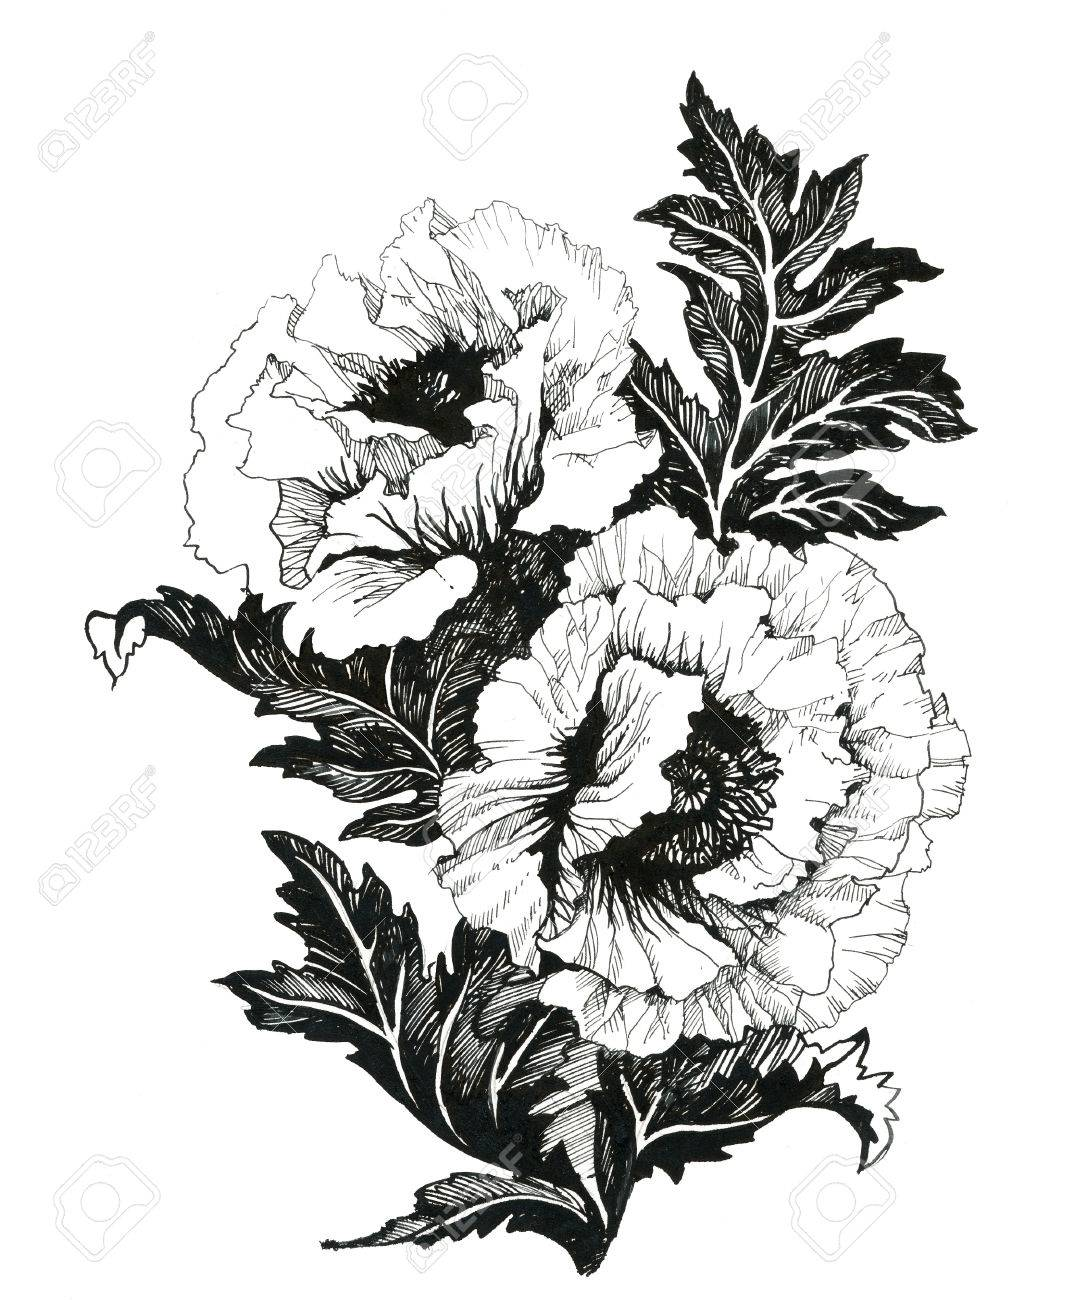 Poppy Flowers Illustration In Black And White Stock Photo Picture